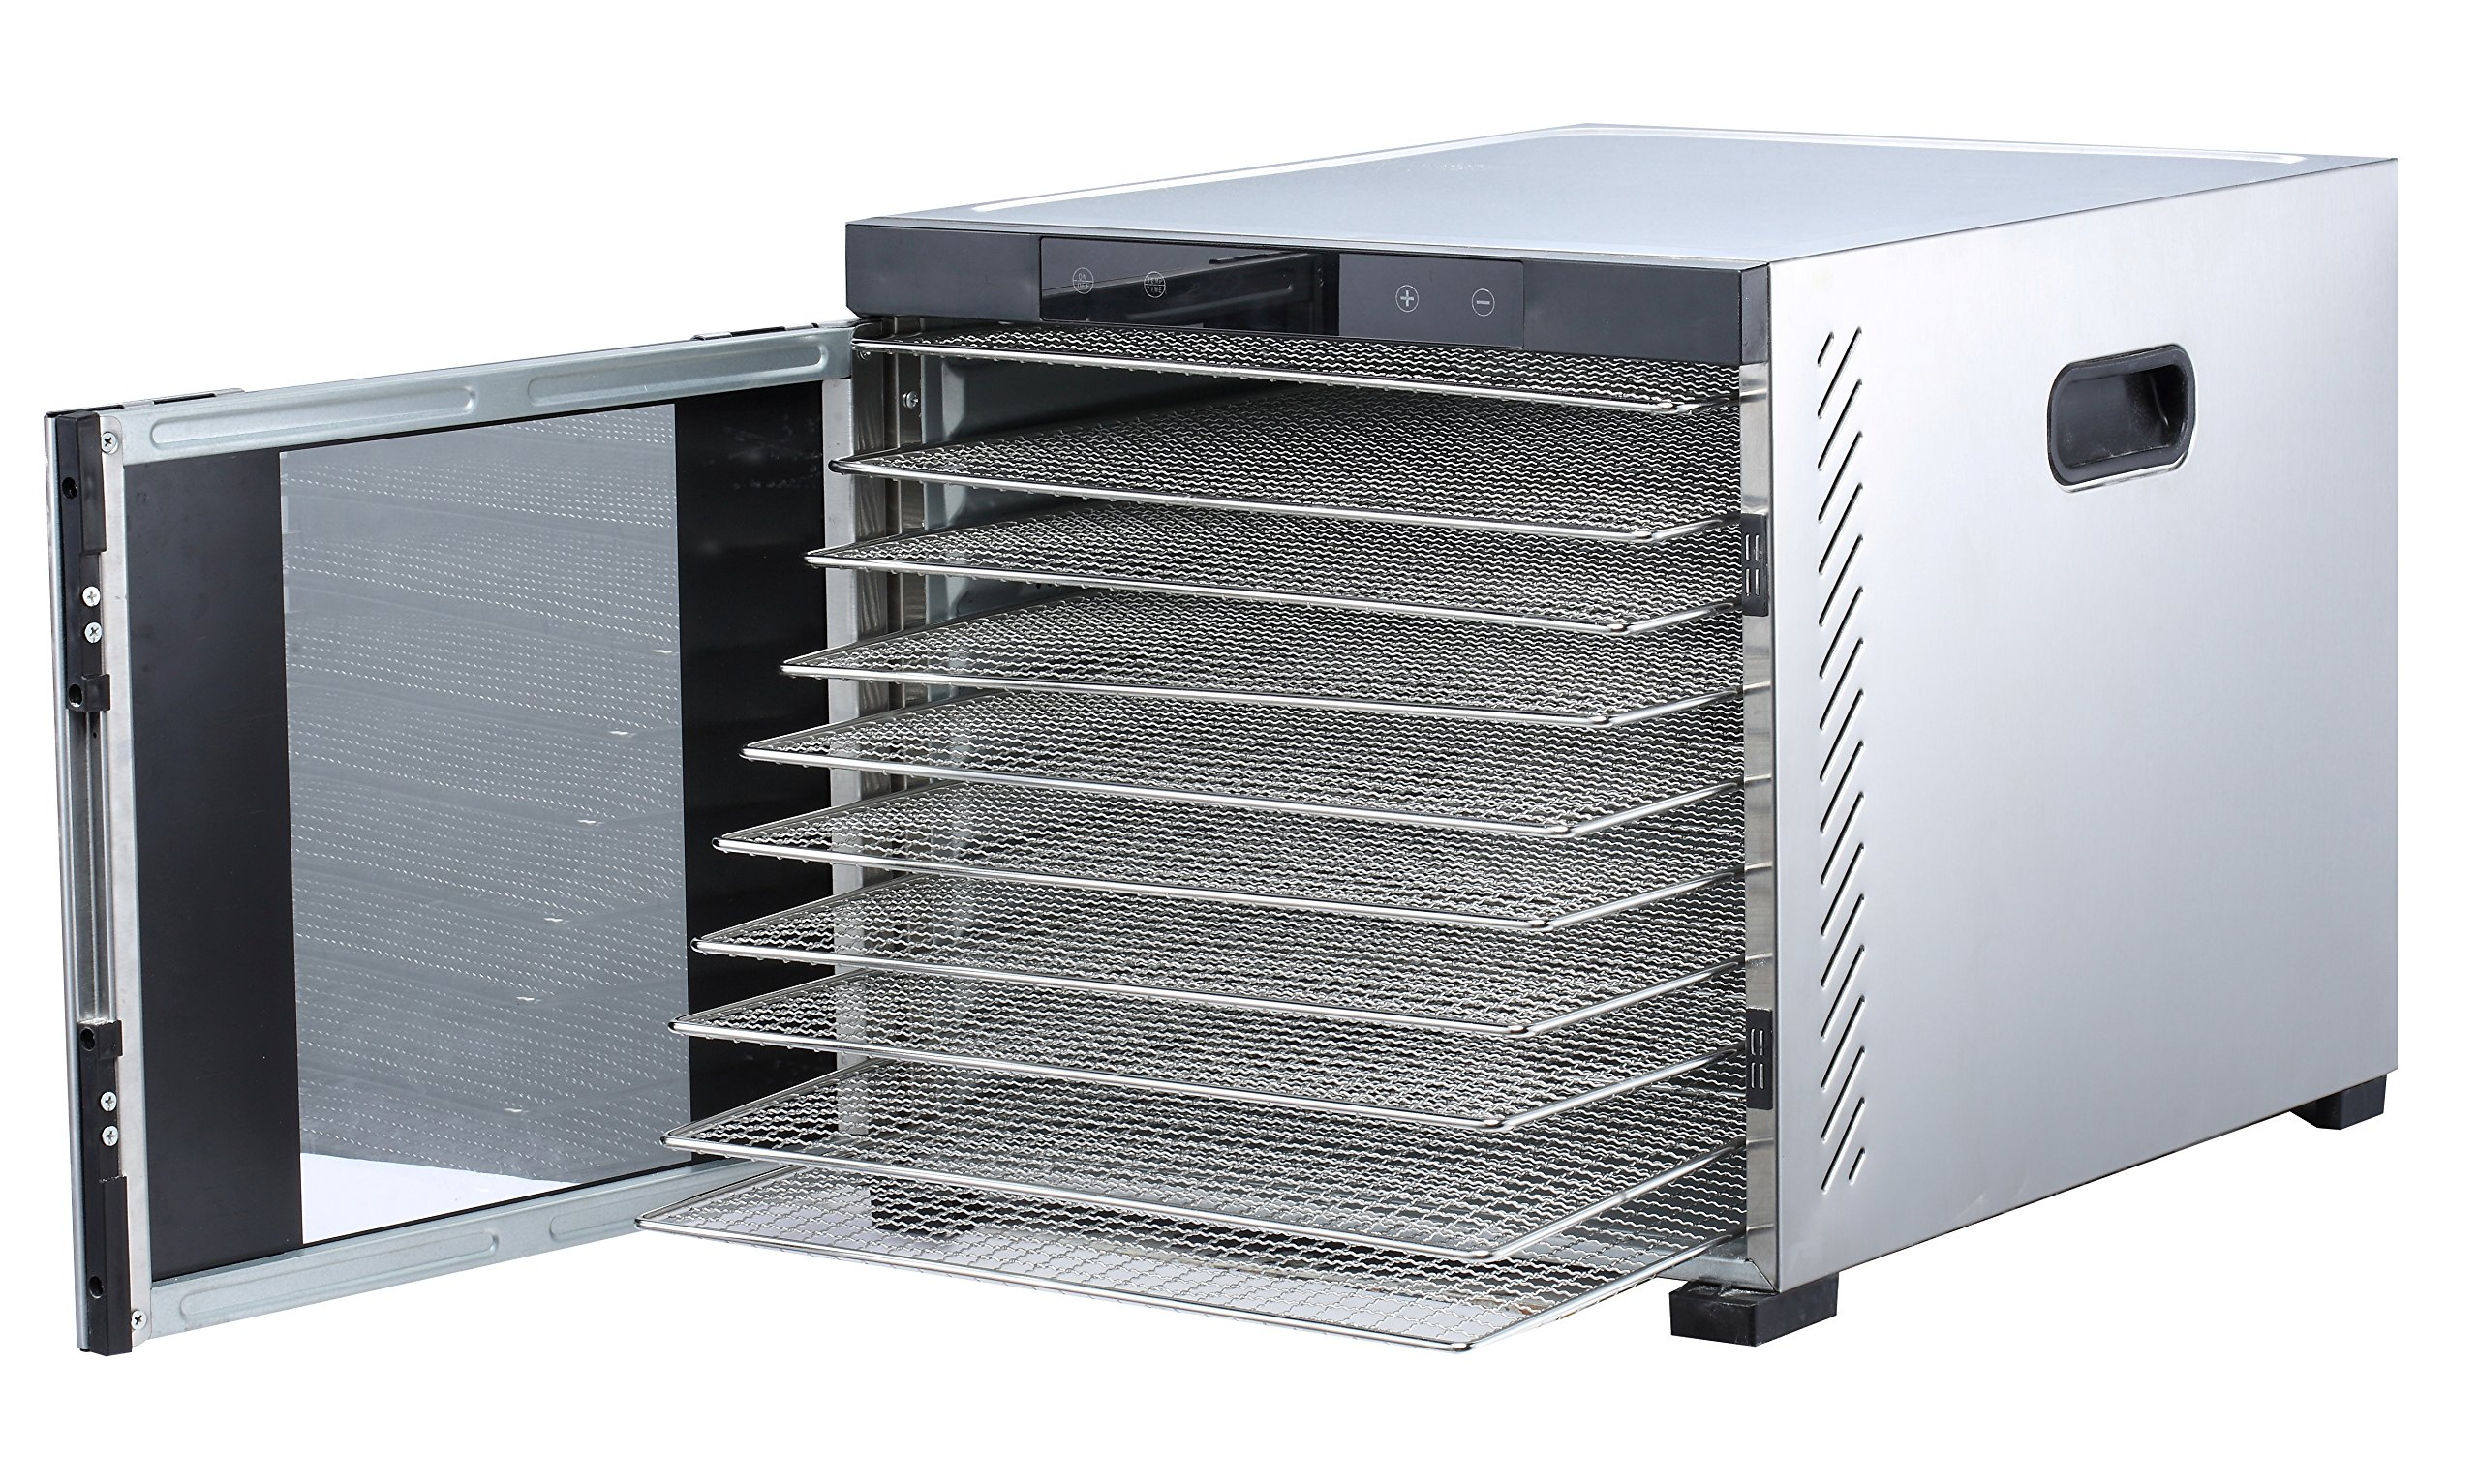 Samson ''Silent'' 10 Tray ALL Stainless Steel Dehydrator - Digital Controls - Glass Door by Samson Brands (Image #2)